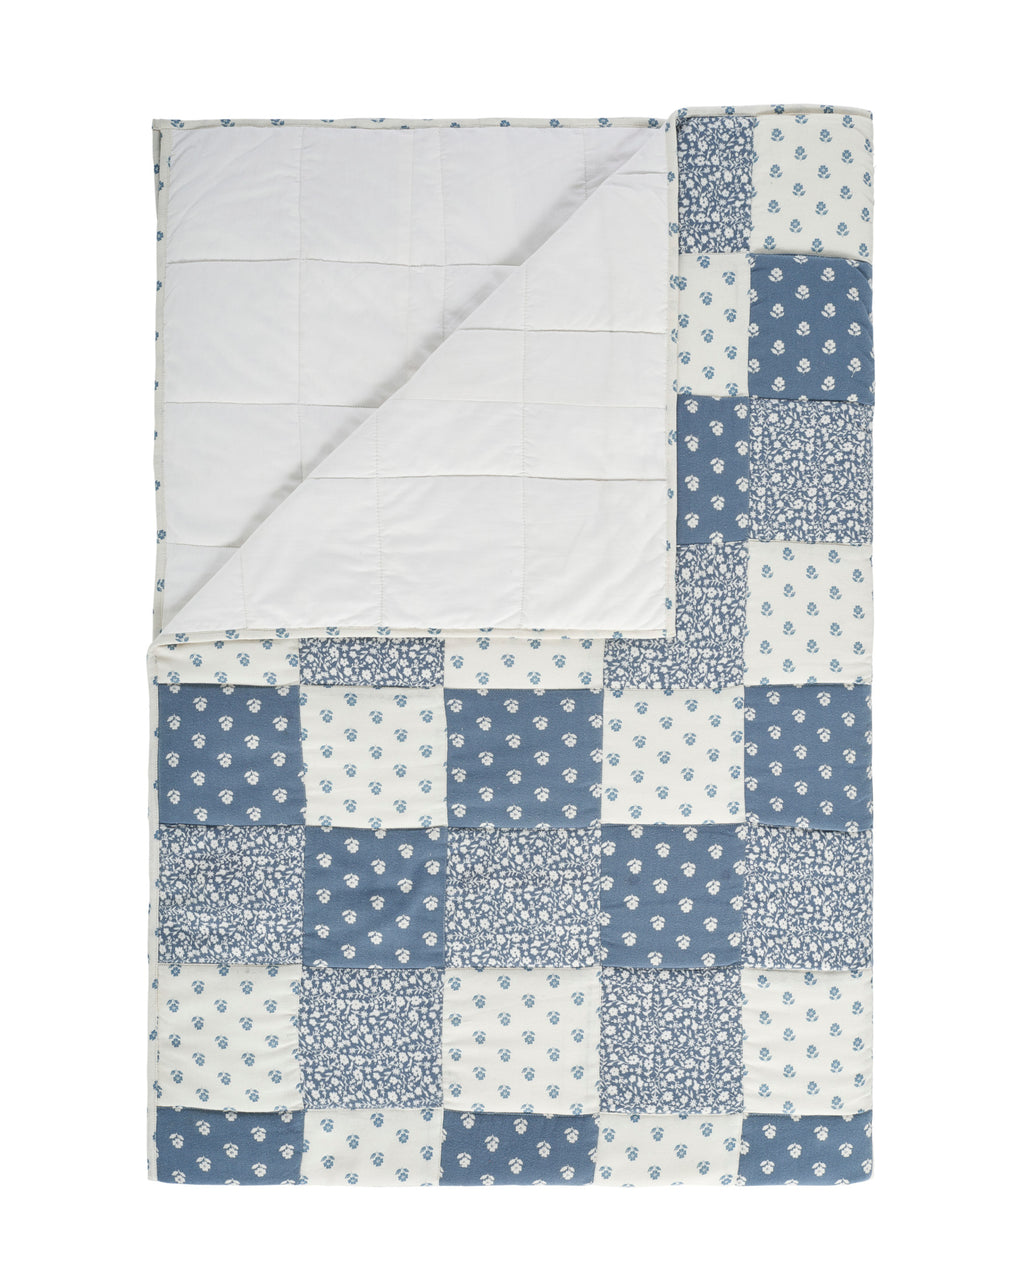 Patchwork blanket - single - blue floral